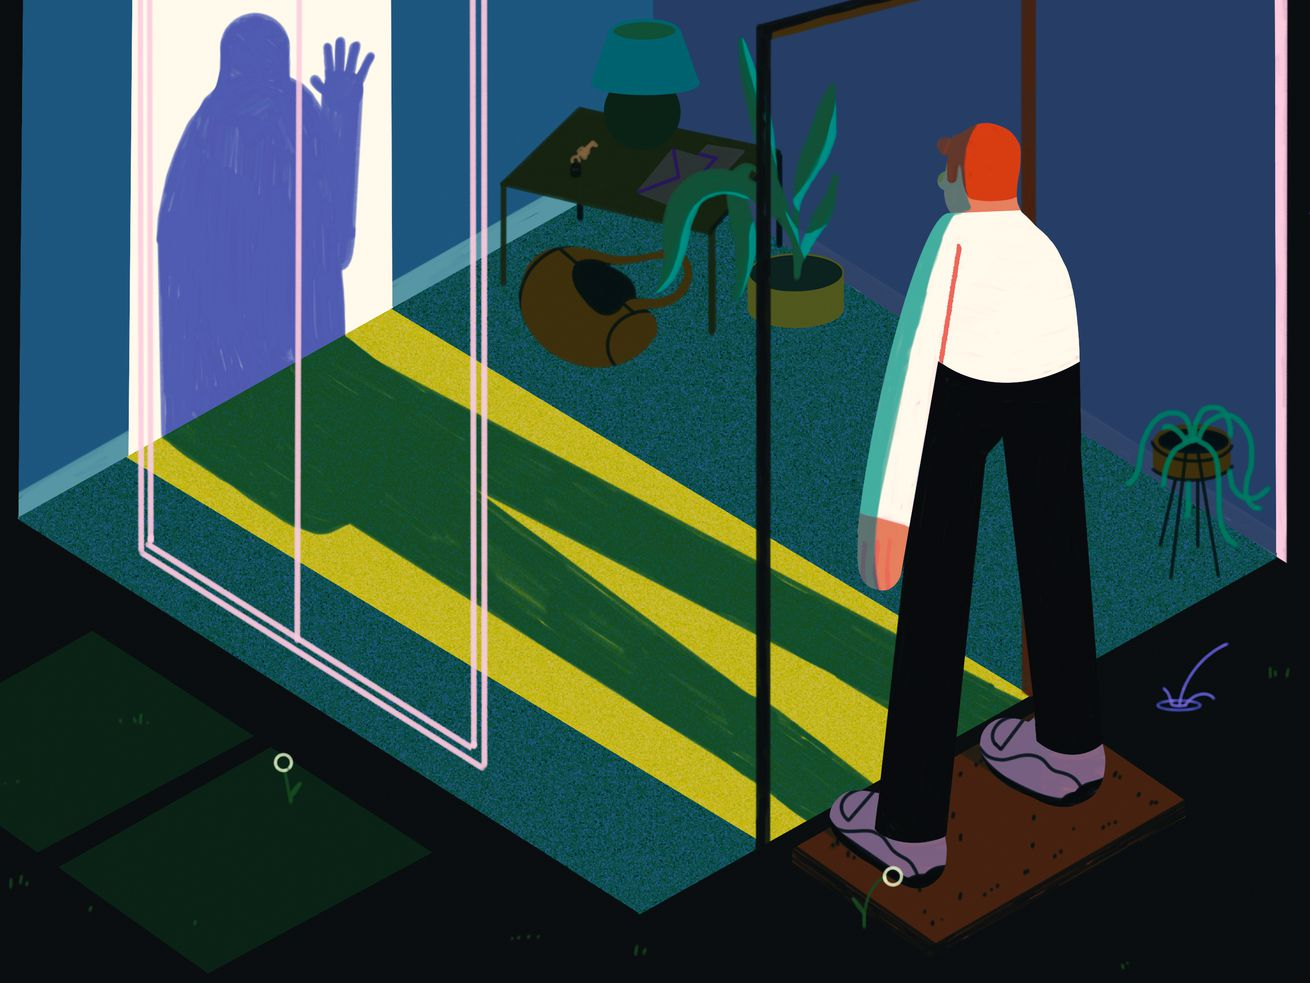 A man stands in the dark staring in to an empty room. His shadow shows that his hand is up against the glass. Illustration.